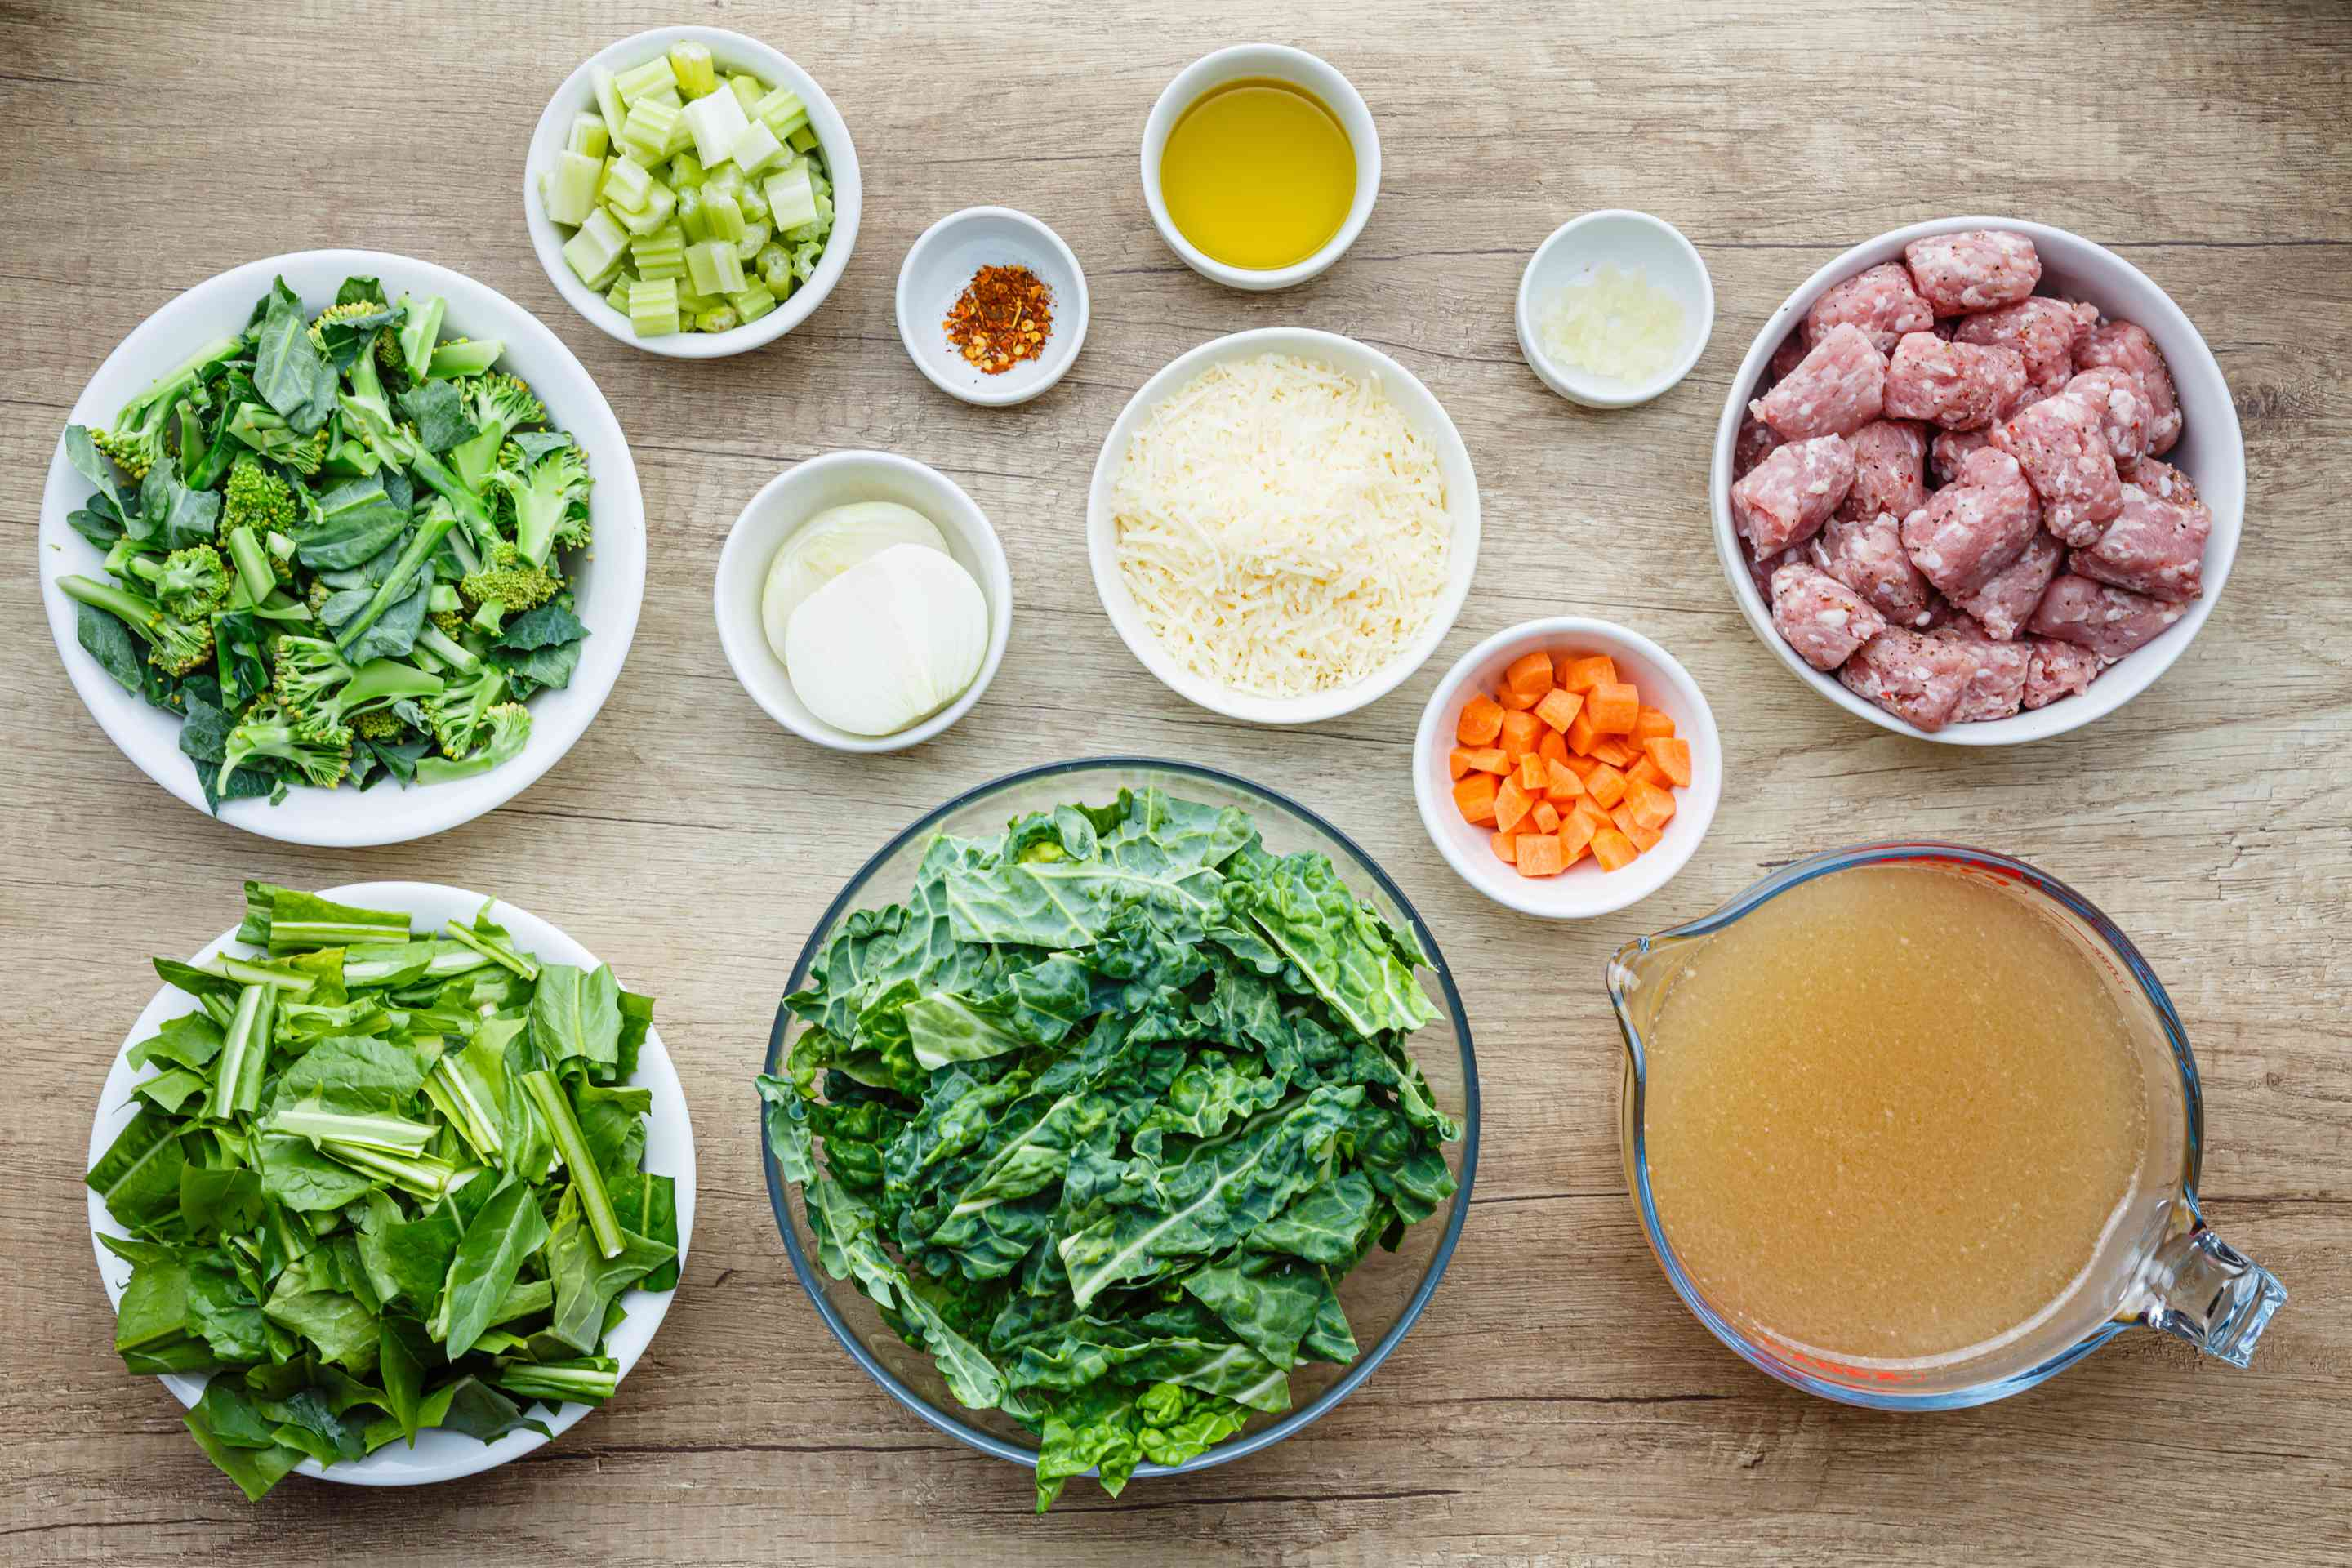 Ingredients for Italian soup